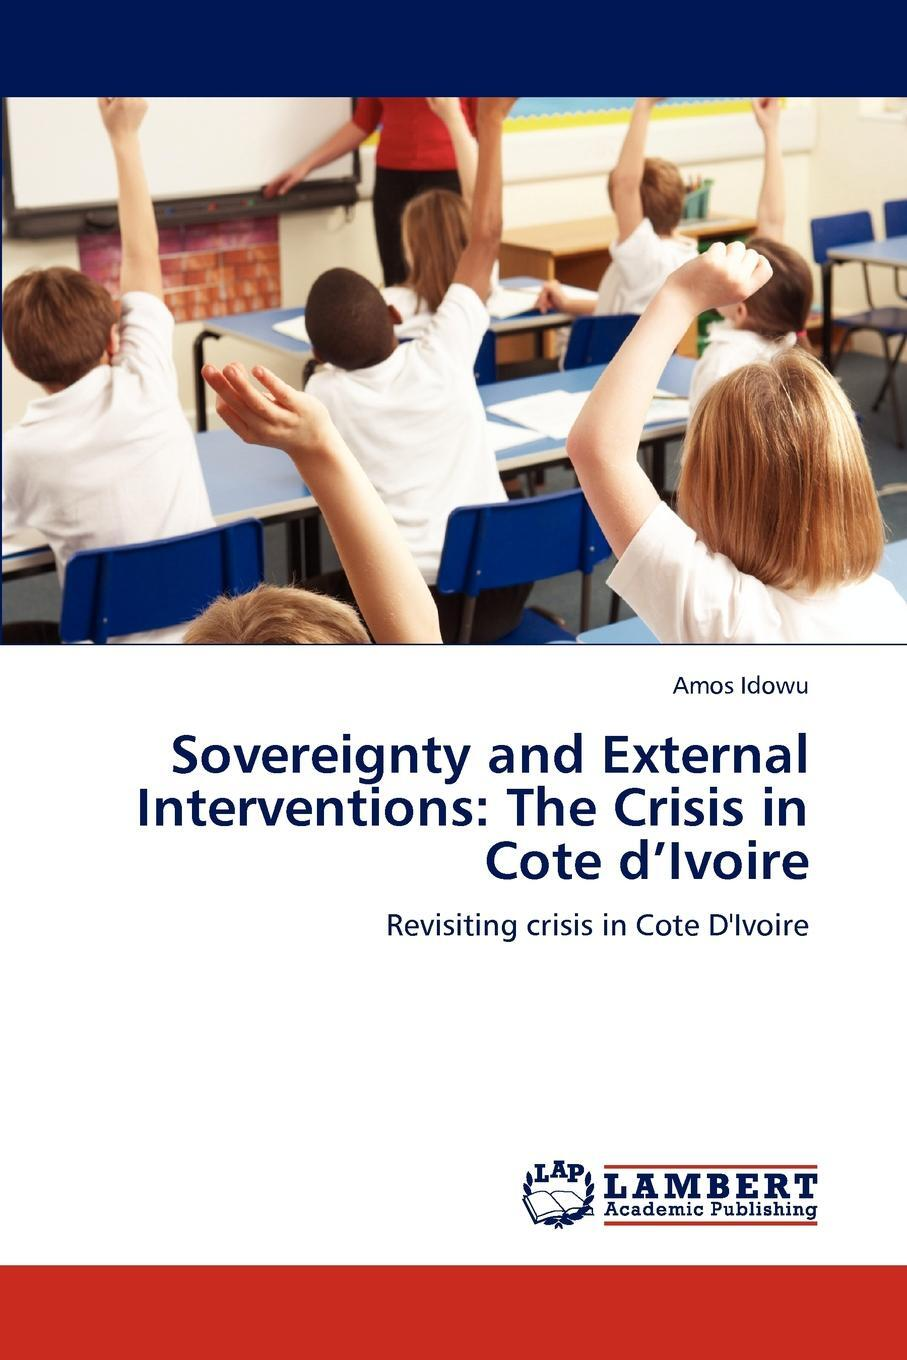 Sovereignty and External Interventions. The Crisis in Cote d`Ivoire. Amos Idowu